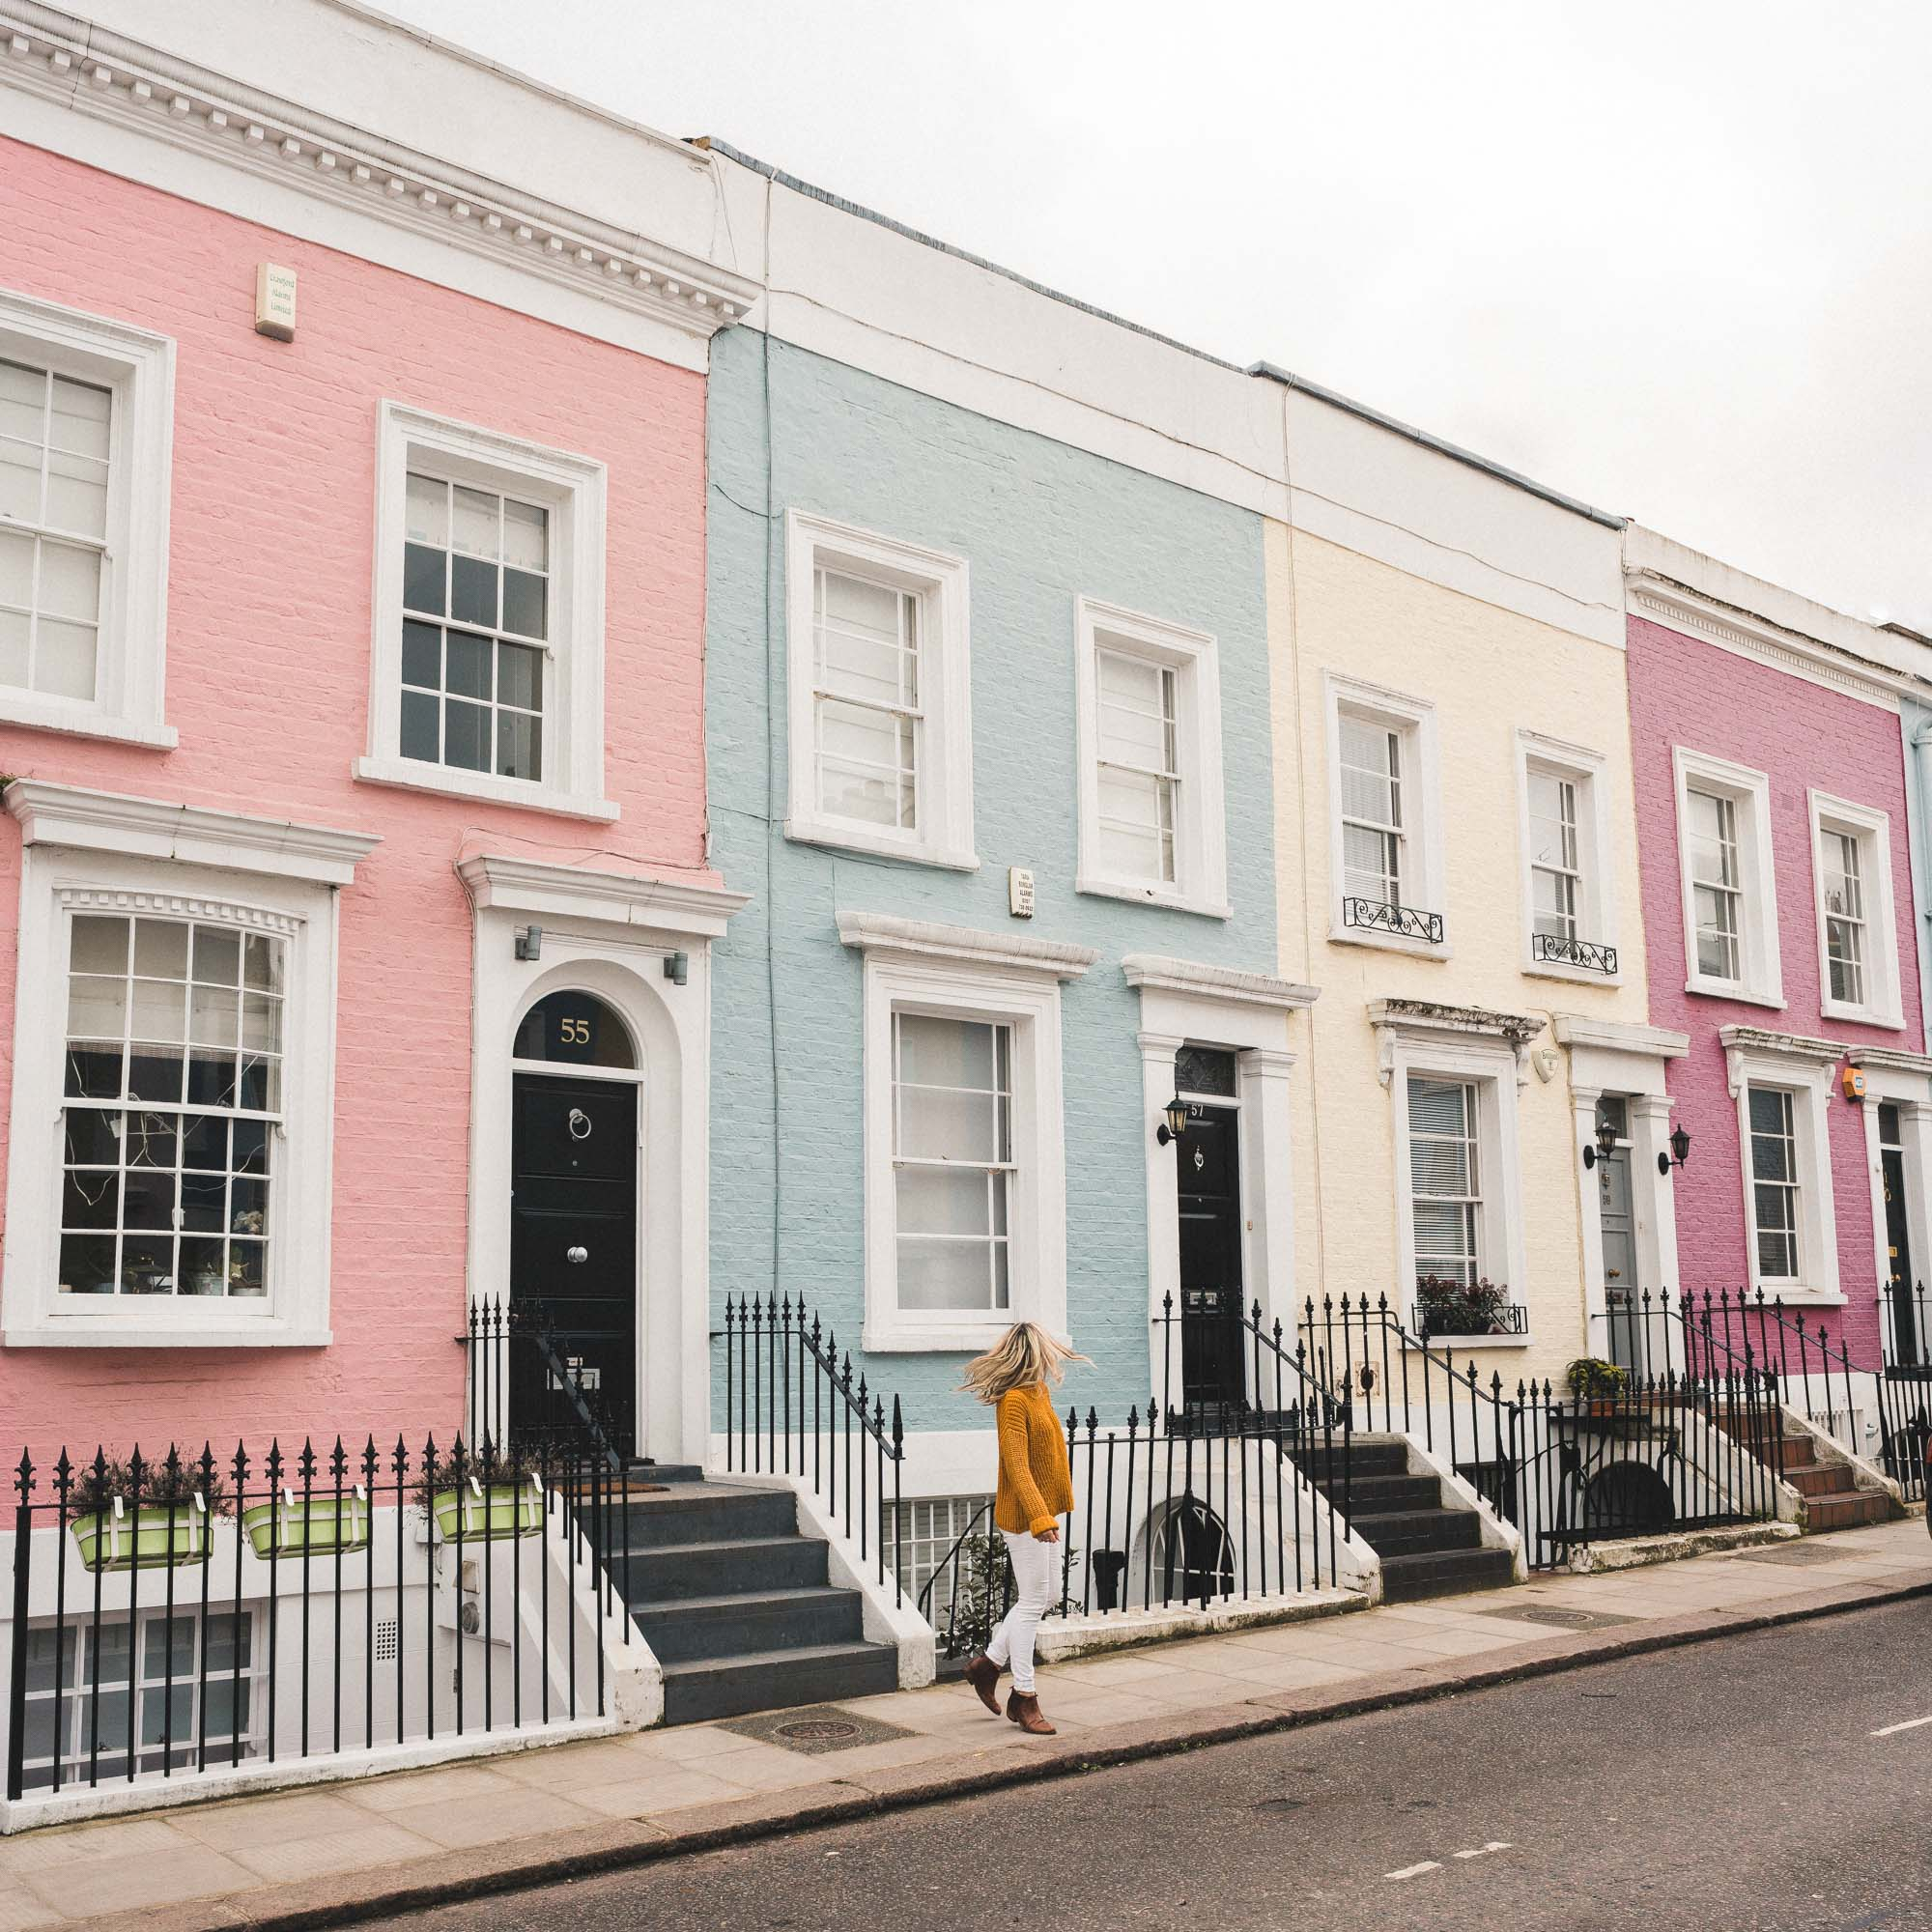 Notting hill pastel houses london england travel blogger Selena Taylor of Find Us Lost